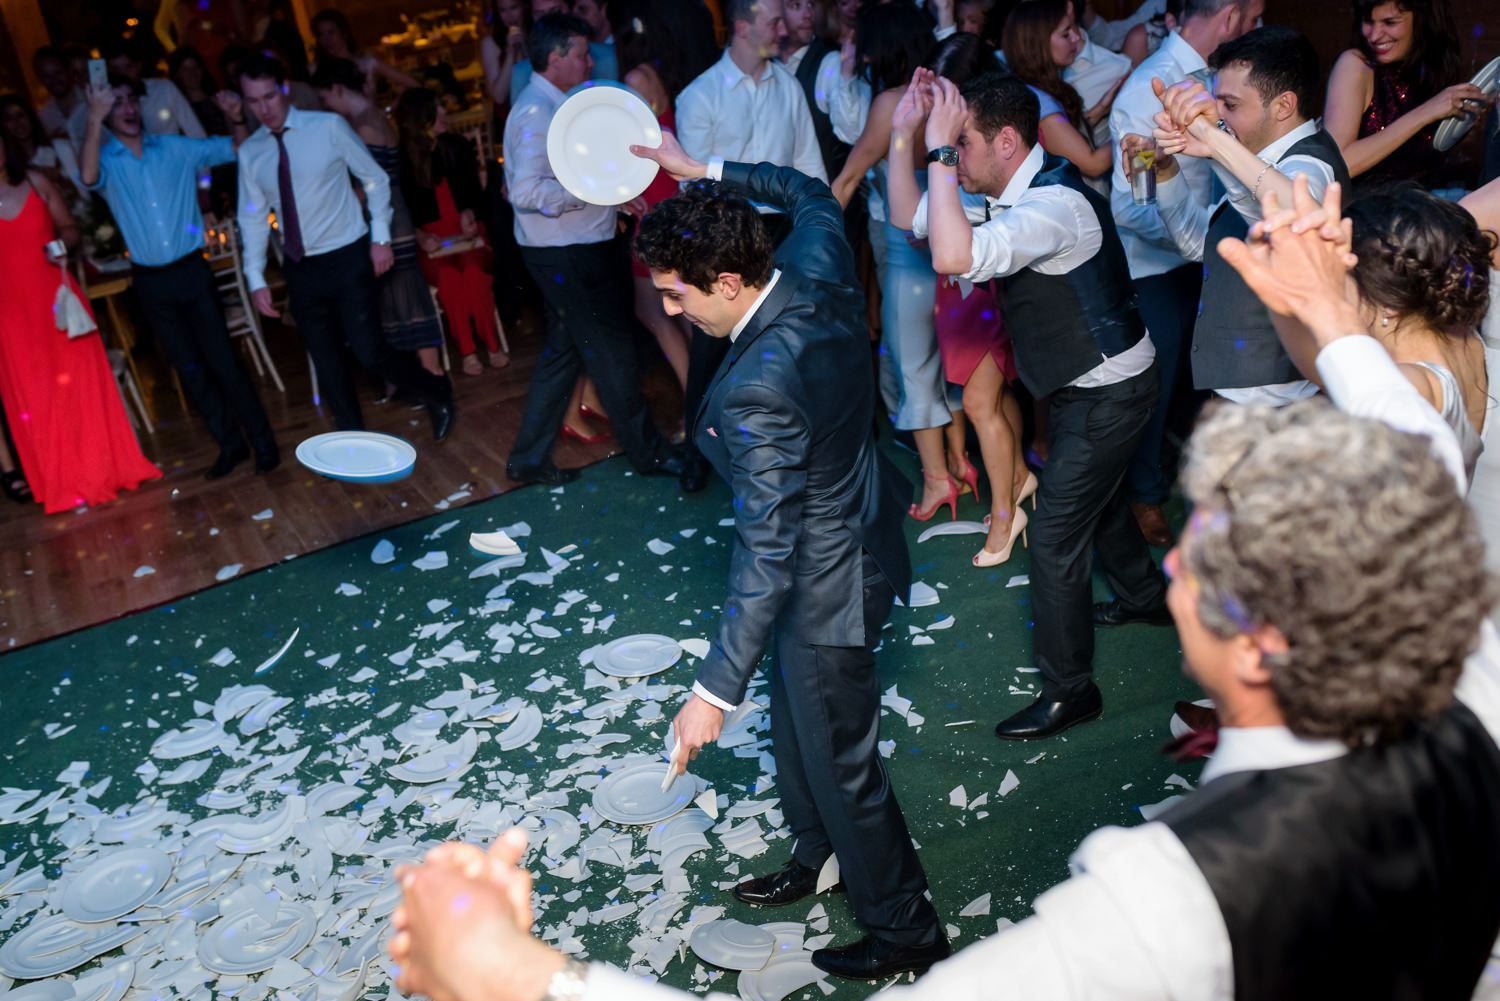 plate smashing at greek wedding